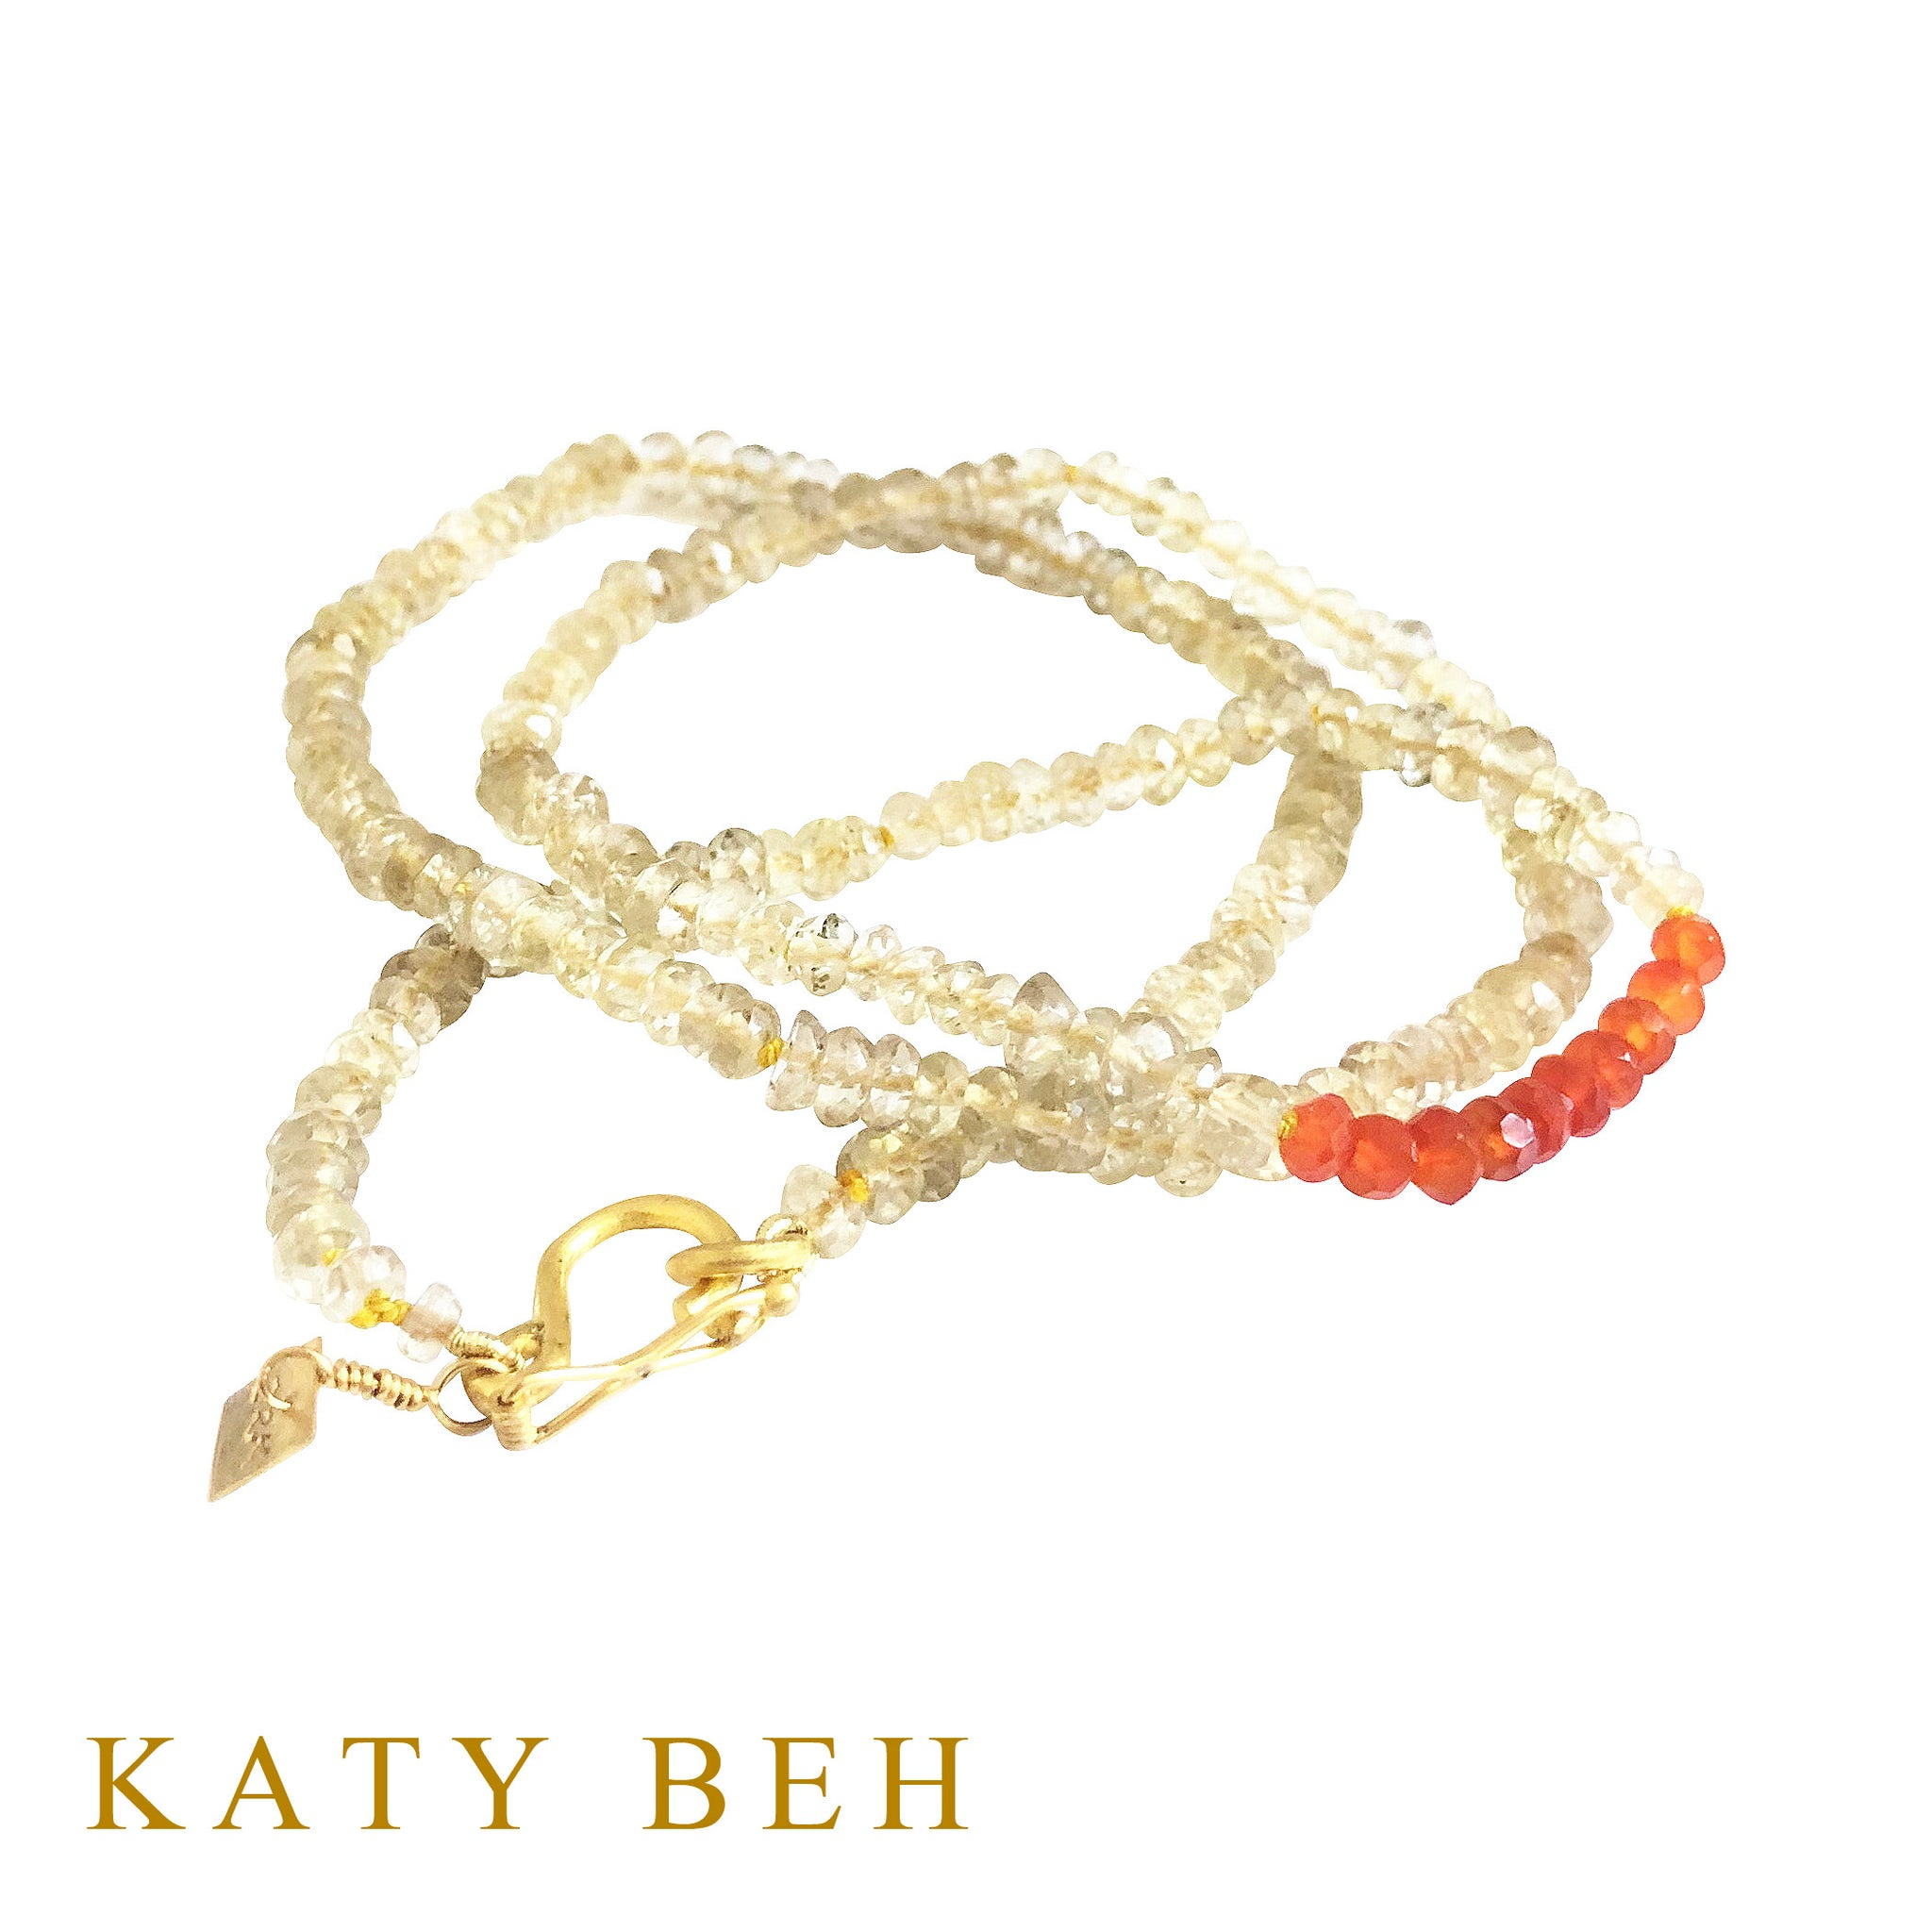 Portia Lemon Quartz and Carnelian Necklace